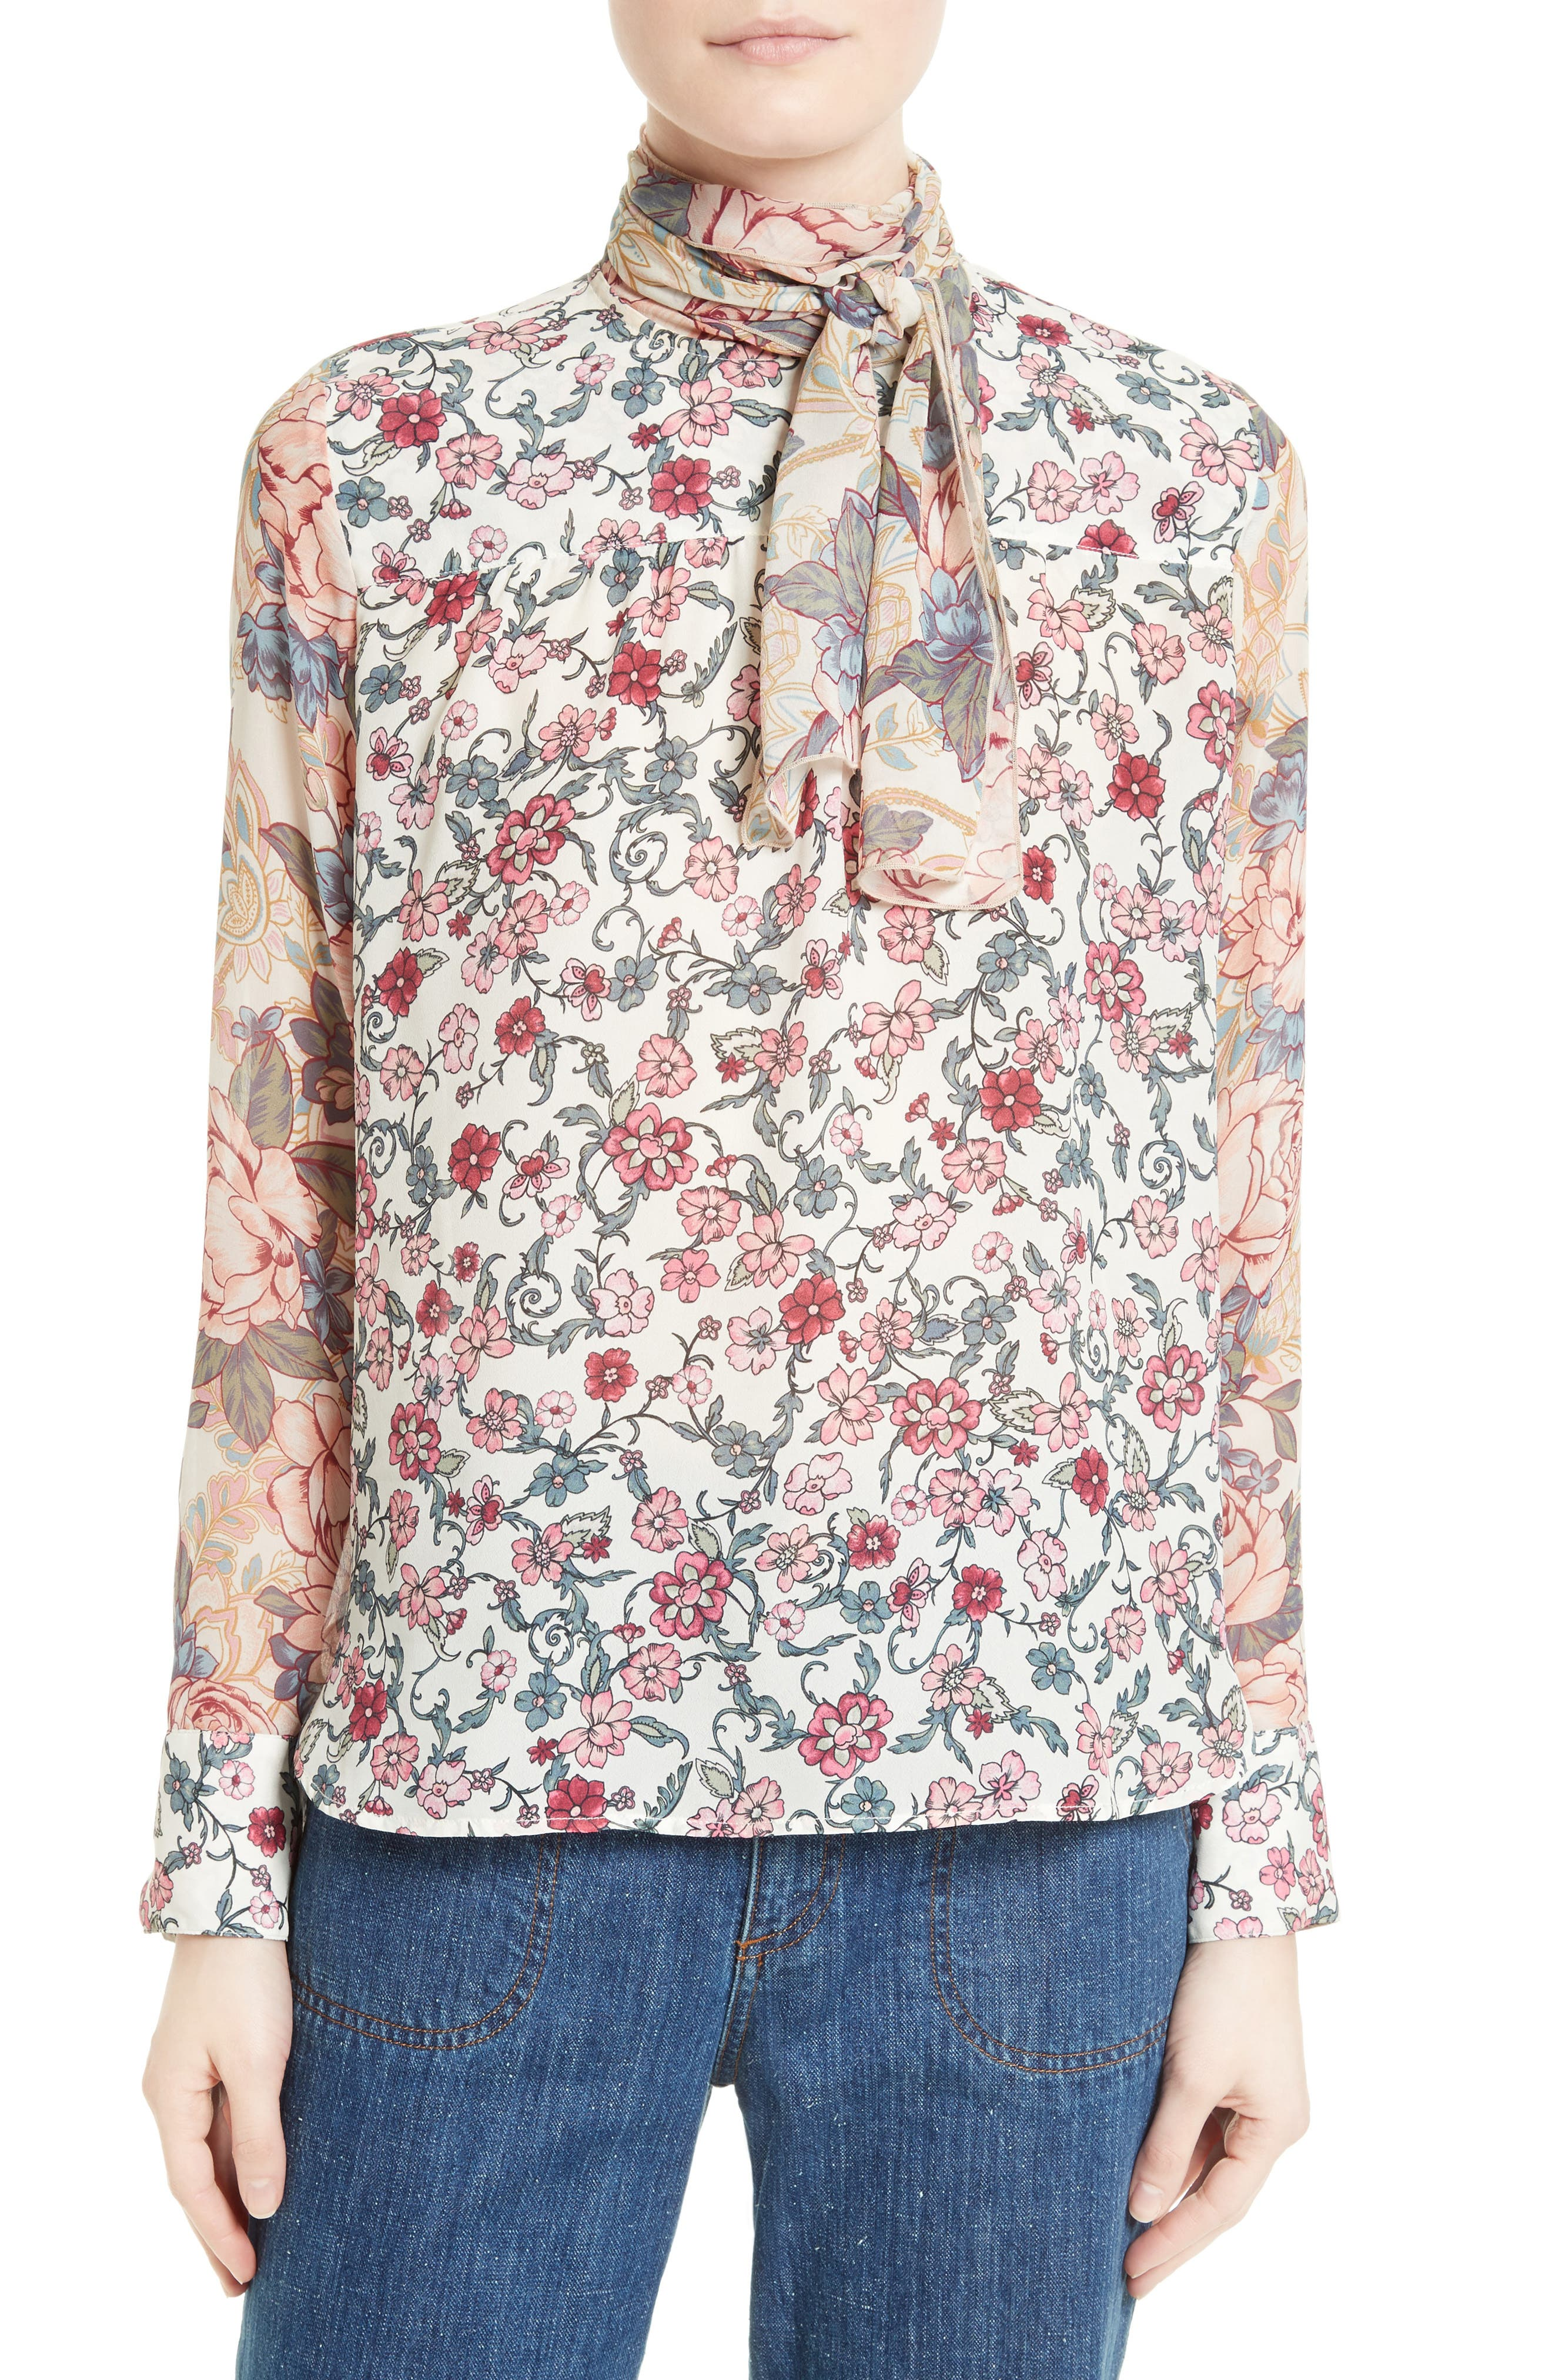 Alternate Image 1 Selected - See by Chloé Floral Tie Neck Blouse